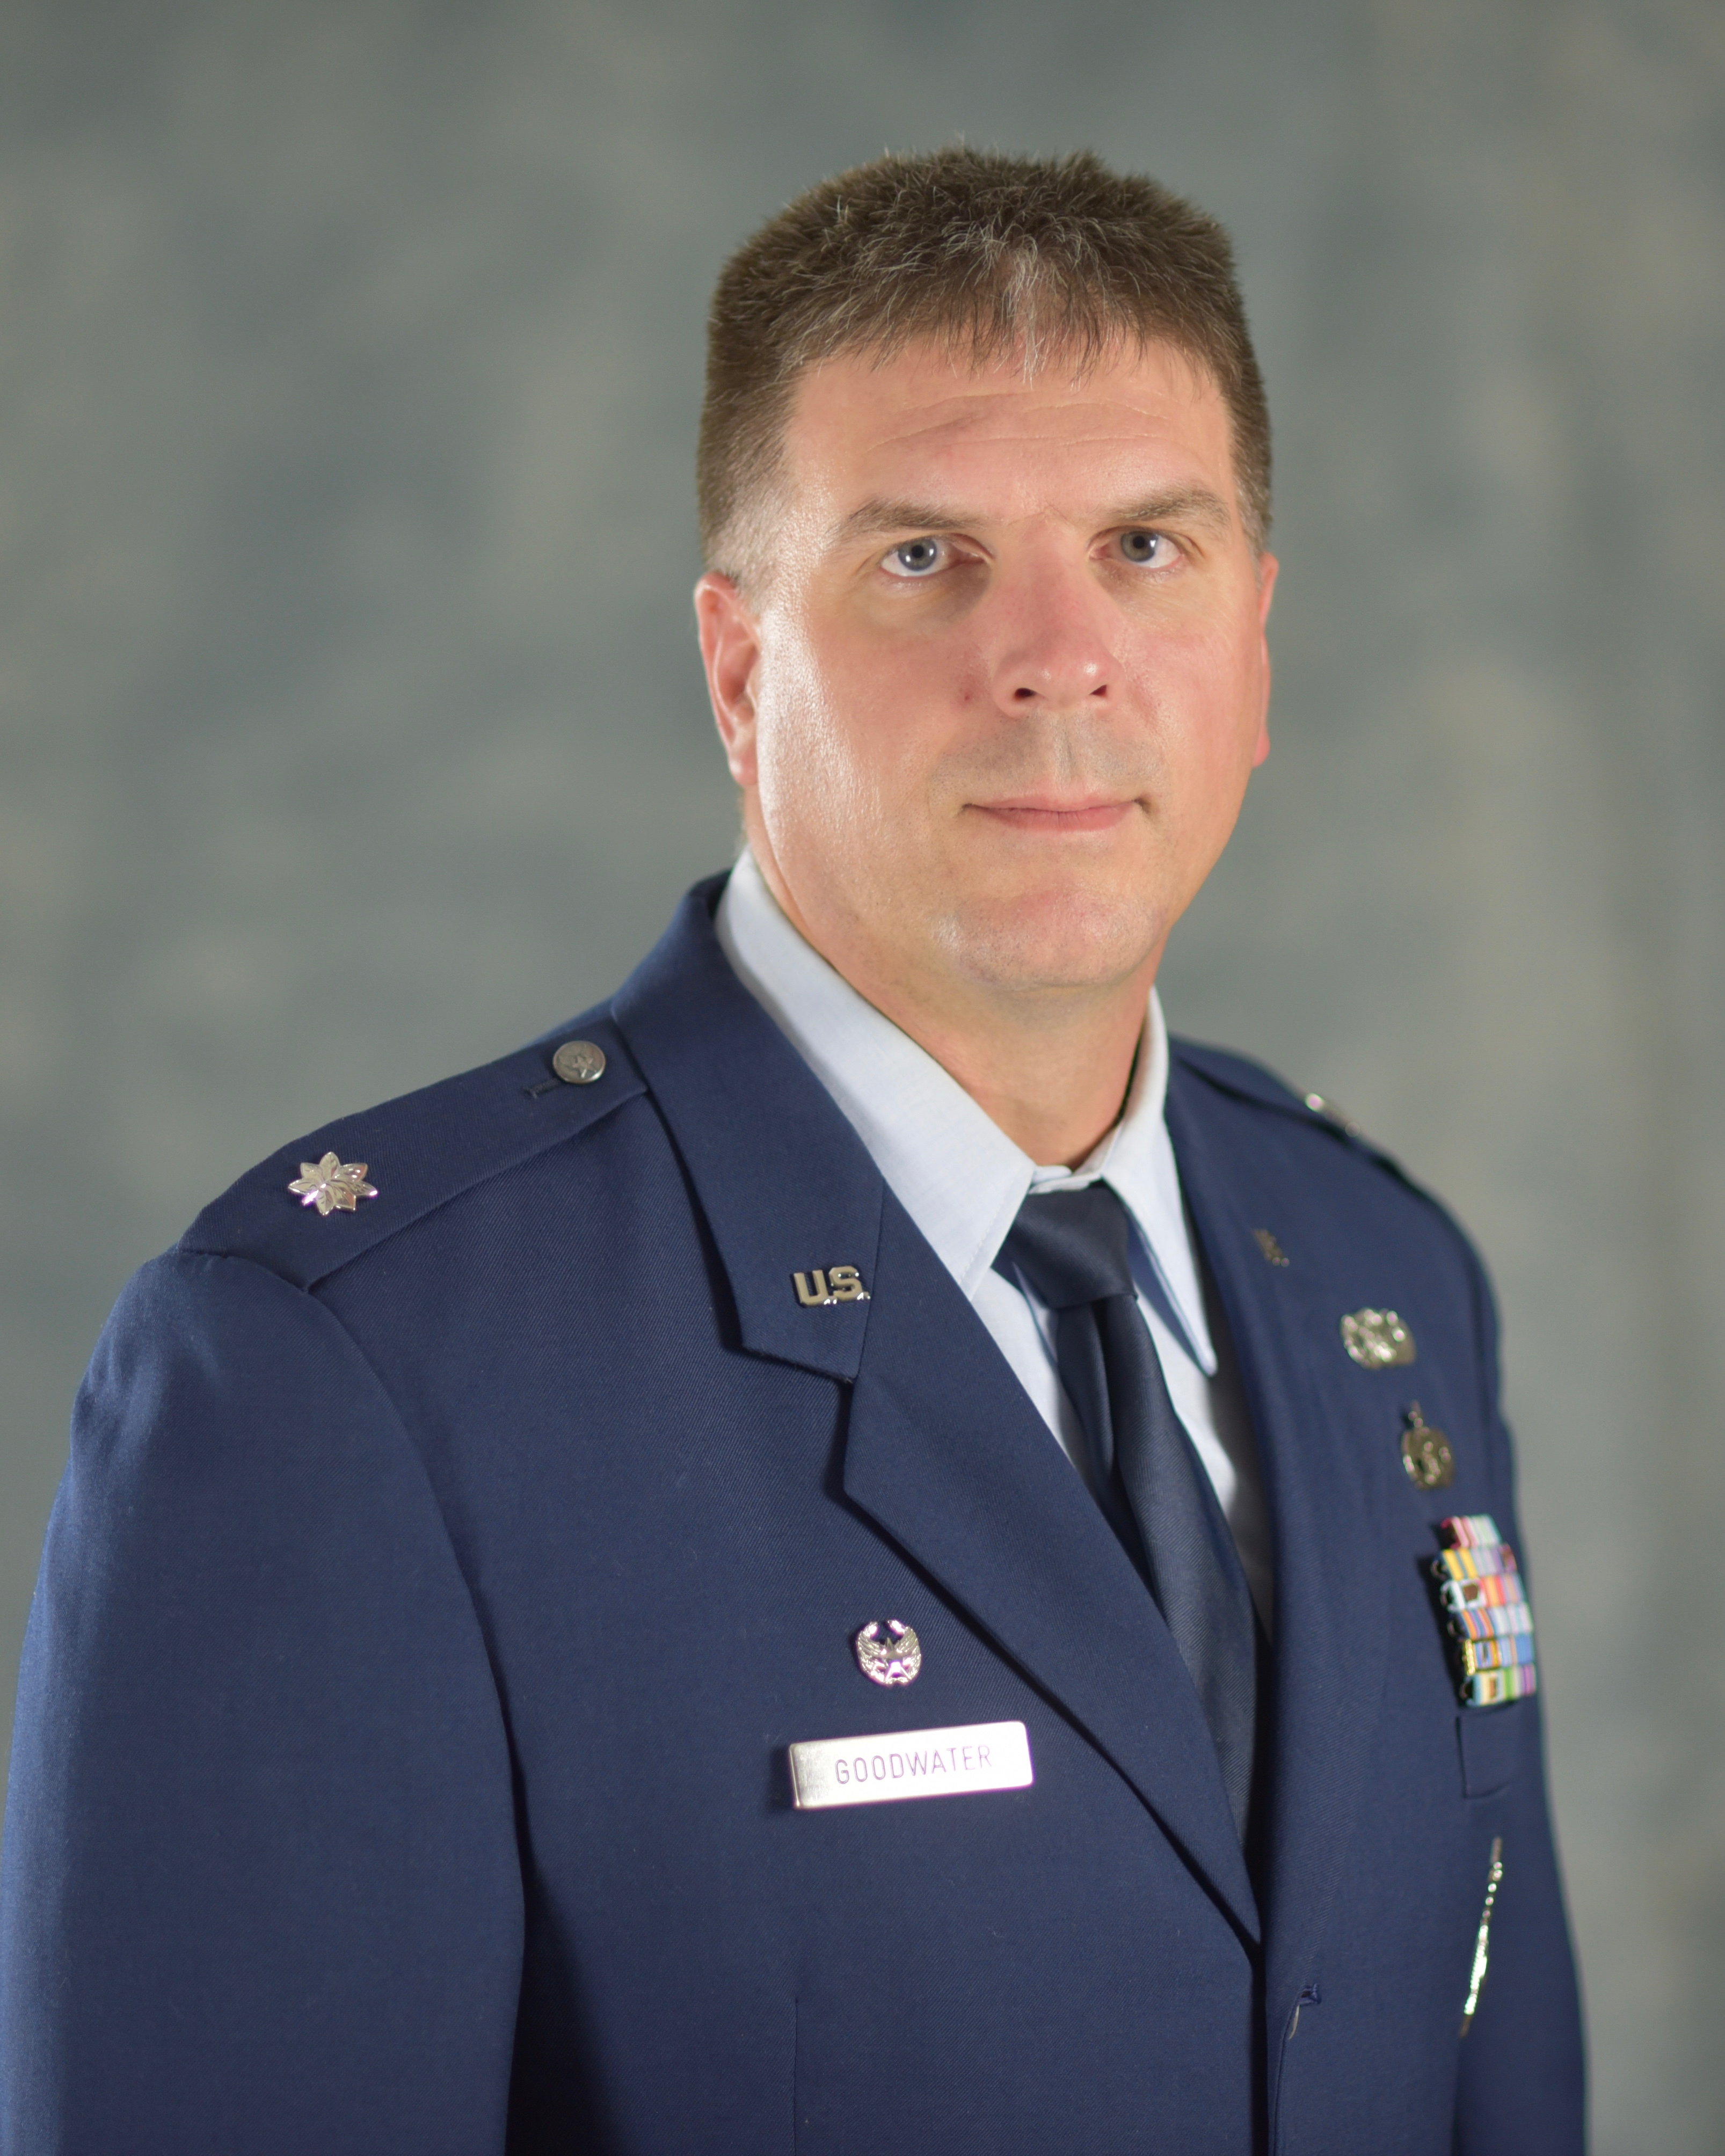 Lt. Col. Greg Goodwater